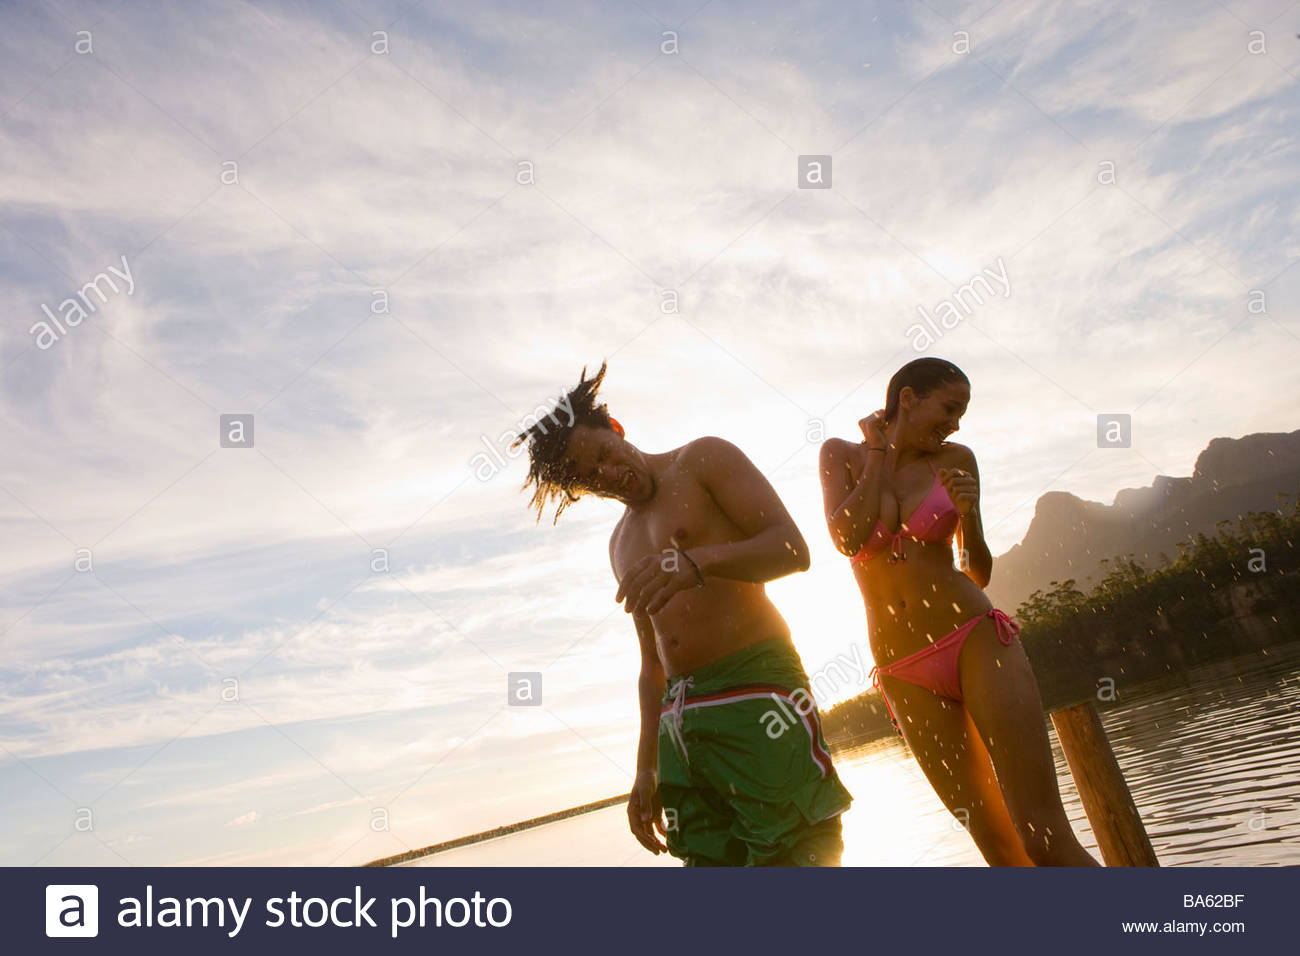 Couple in bathing suits shaking water off bodies - Stock Image